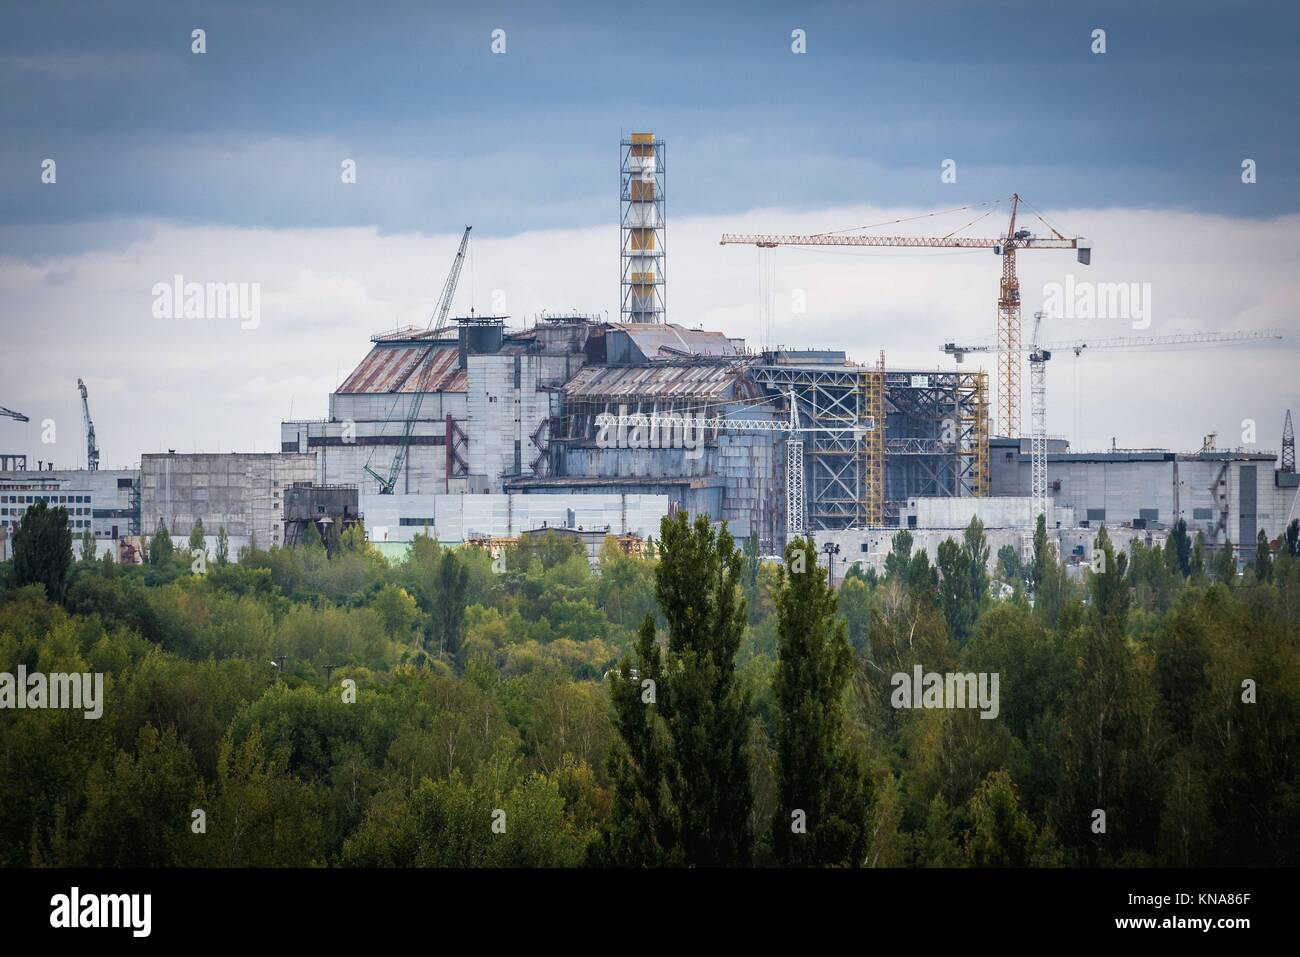 Reactor number 4 of Chernobyl Nuclear Power Plant in Zone of Alienation around nuclear reactor disaster in Ukraine. - Stock Image